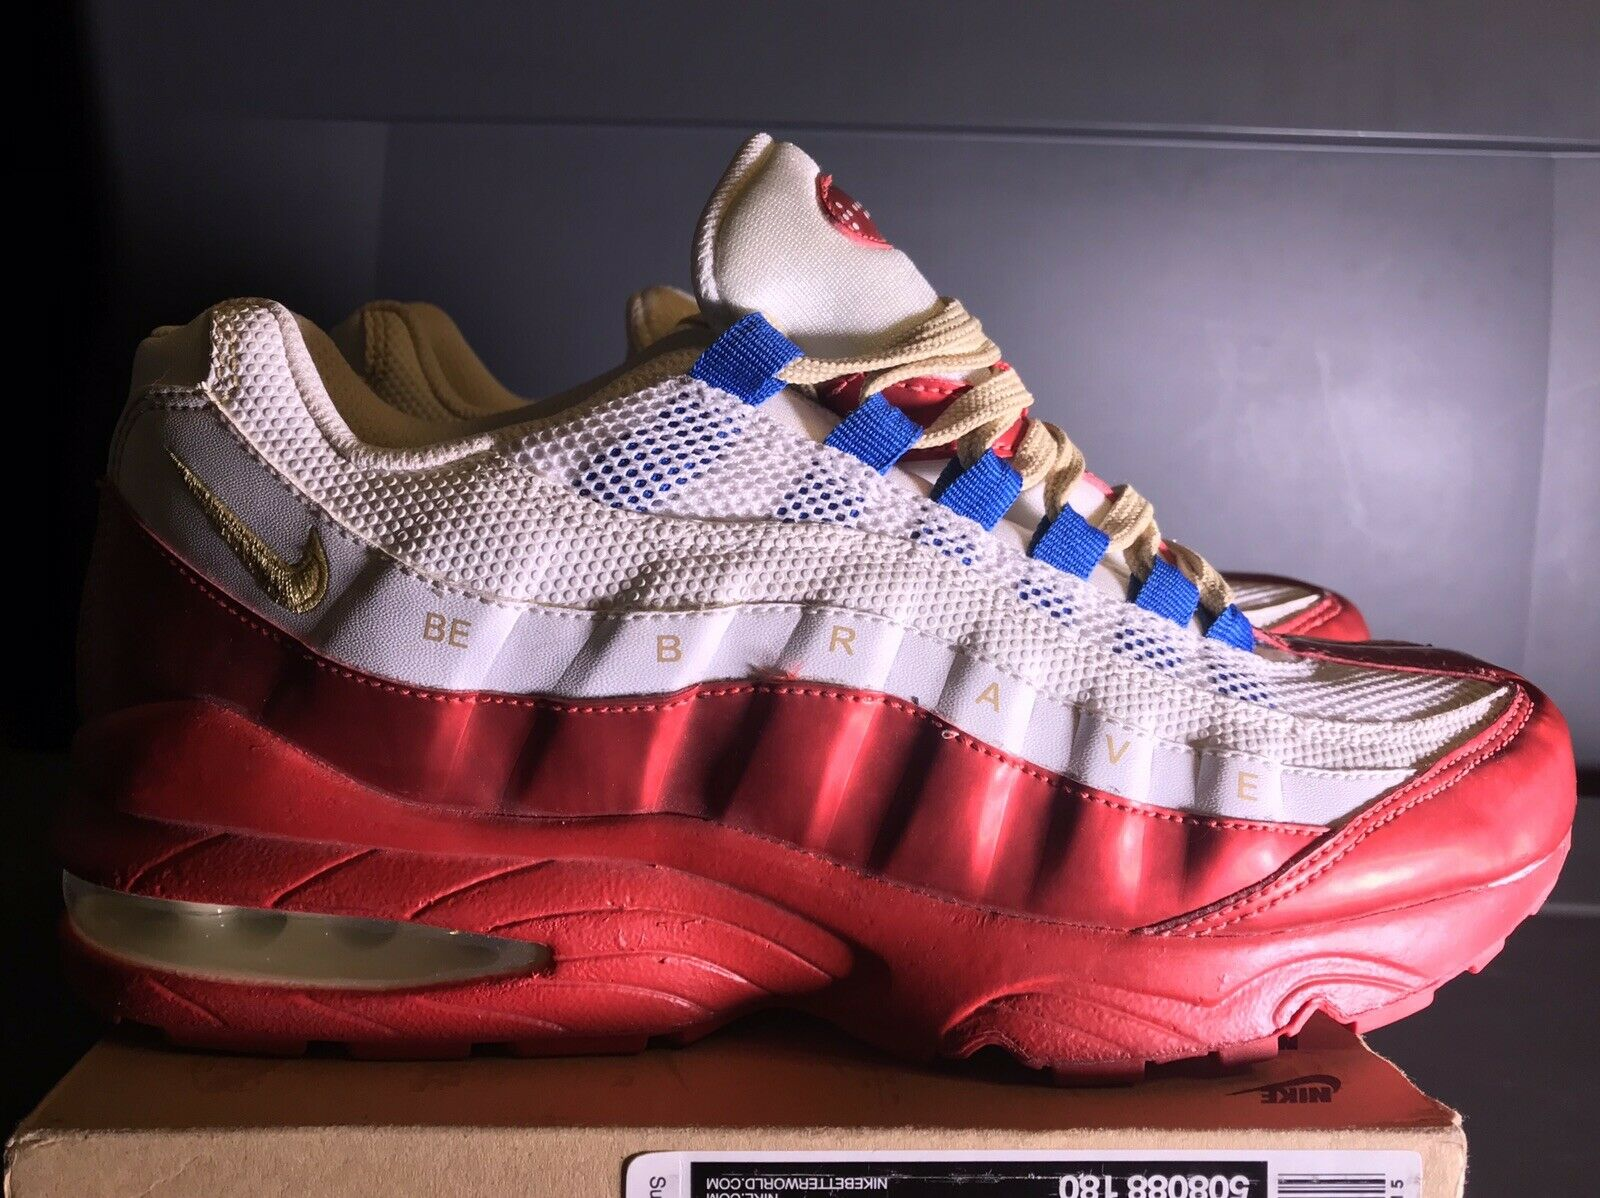 Nike Air Max 95 LE DB Doernbecher Be Brave 2011 Rare (508088-180) Size 6.5y